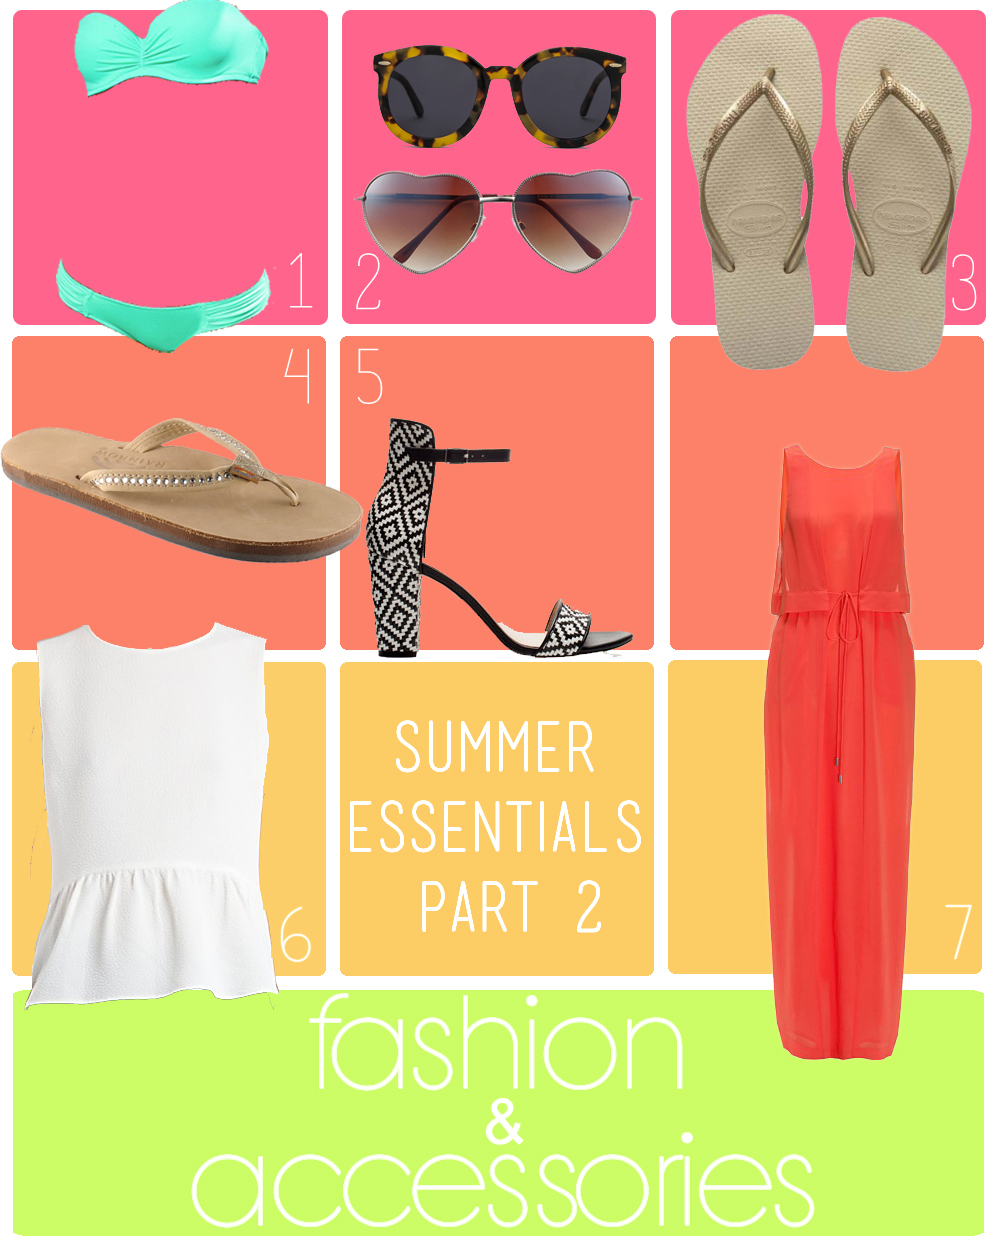 how to, increase blog traffic, body, beach, summer, beach beauties, accessories, bikini, crystal, fashion, heart sunnies, Karen Walker, Havaianas, Nordstrom, rainbow sandals, Summer Essentials, sunglasses, Swarovski, swim, Zara, Sandro, Paris, France, Whistles, London, UK, England, Britain, beach essentials, beauty, fashion, favorite, top, best, dirty blonde ambition, haute off the blog, youtube, part 2, uk, london, britain, great britain, england, united kingdom, paris, france, summer essentials, summer must-haves. must-haves, essentials, united kingdom, uk, britain, los angeles, la, california, cali, new york, vegas, las vegas, hot, vacation, holiday, ete, été, cosmetics, makeup, make-up, style, crystal, crystals, bloglovin, bloglovin', blue celine paris phantom, for inquiries, europe, chanel, dior, cartier, bvlgari, guerlain, givenchy, fendi, kardashian, Dirty Blonde Ambition, DBA, Dirty Blonde Ambition Icon, chanel, prada, style, fashion, makeup, cosmetics, sports, athletes, beauty, music, artists, artist, singer, songwriter, nordstrom, bloomingdales, giveaway, giveaways, contest, contests, summer, spring, fall, winter, autumn, usa, la, los angeles, las vegas, vegas, cali, california, newport beach, laguna beach, orange county, beverly hills, huntington beach, london, united kingdom, new york city, new york, uk, paris, france, dior, melrose, Beauty, Blog, Blogger, Cosmetics, Facebook, Fashion, Guru, how to, Make Up, Makeup, moving, New, notice, redirect, Style, tips, tricks, tutorials, Twitter, YouTube, asos